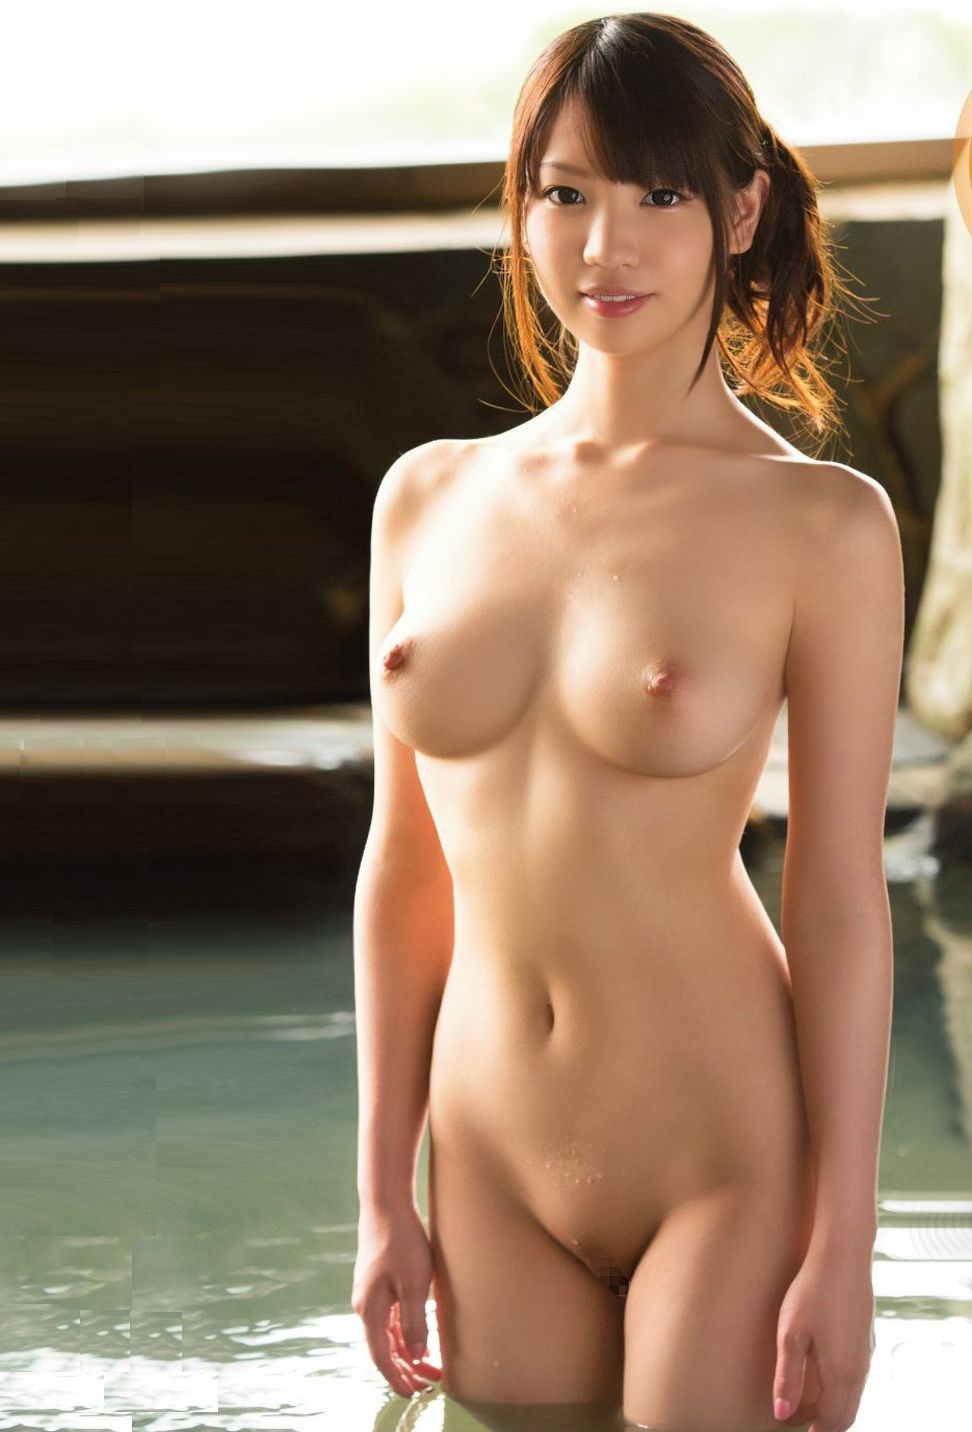 Pretty japan girl naked